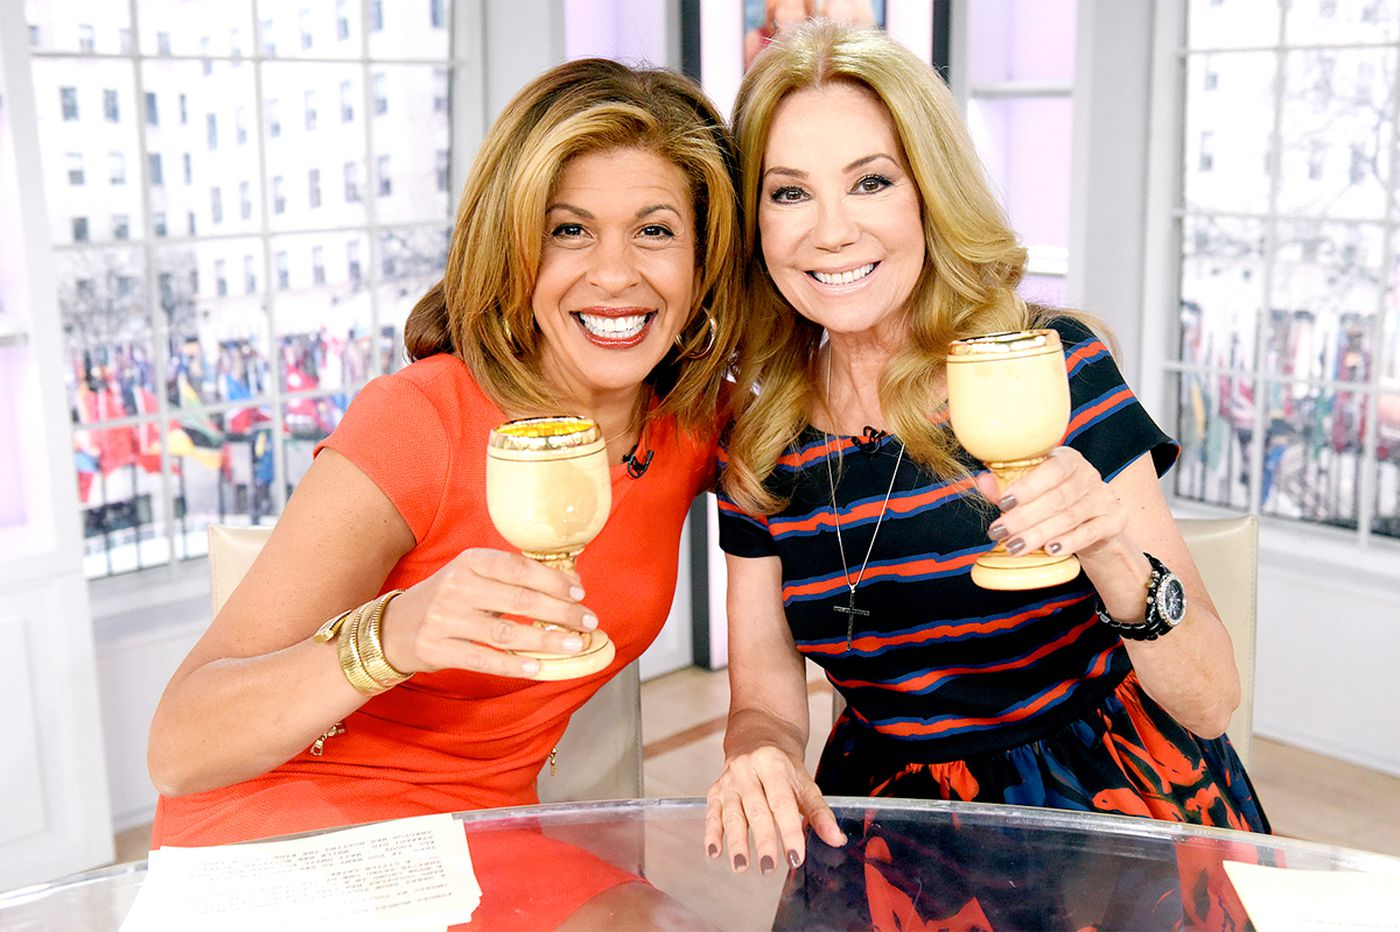 More changes to 'Today' show as Kathie Lee Gifford announces 'bittersweet' exit